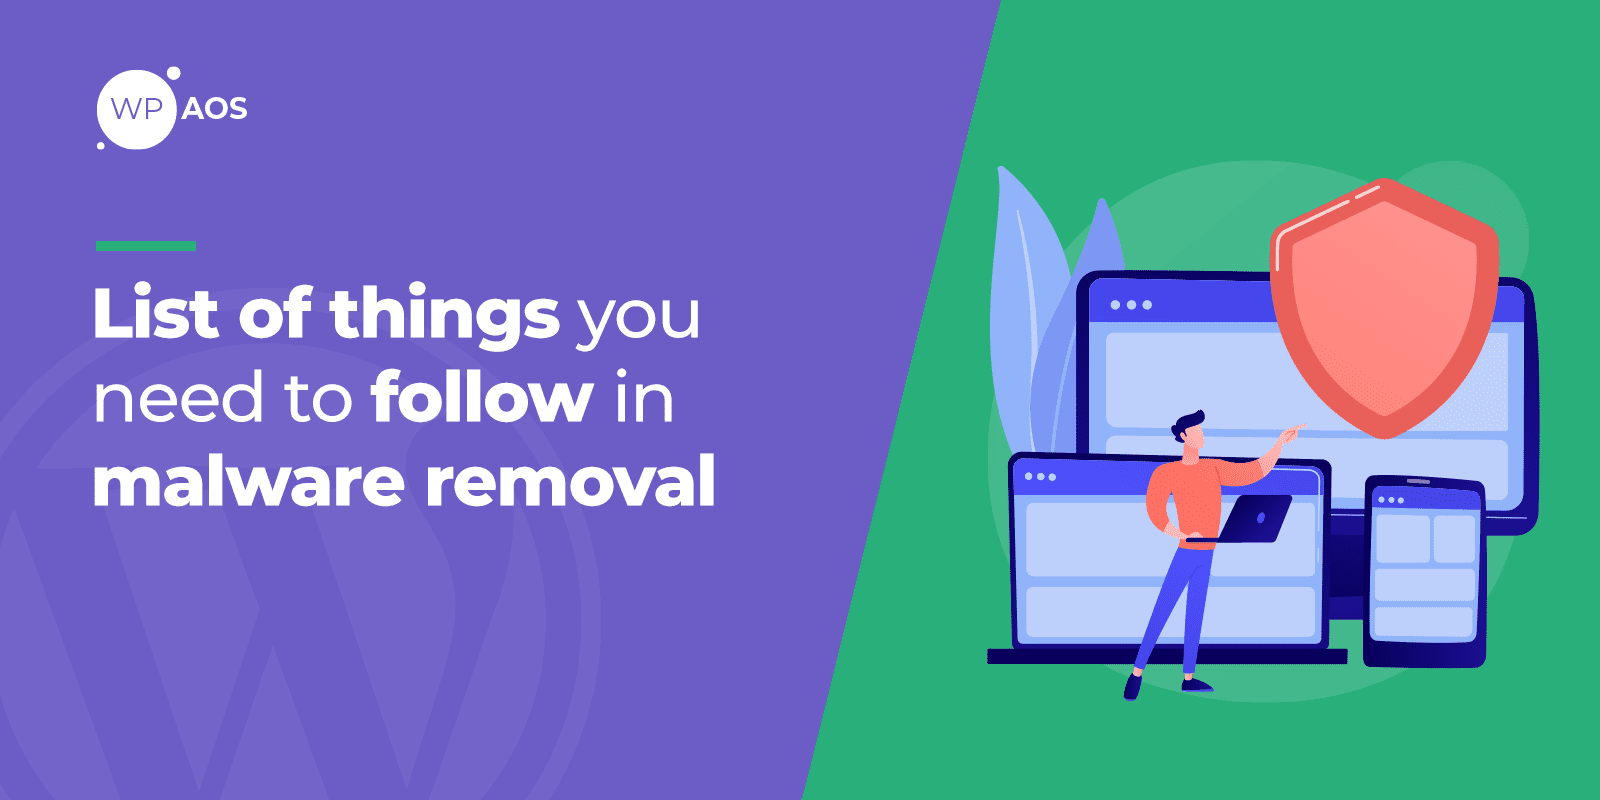 list-of-things-you-need-to-follow-in-malware-removal